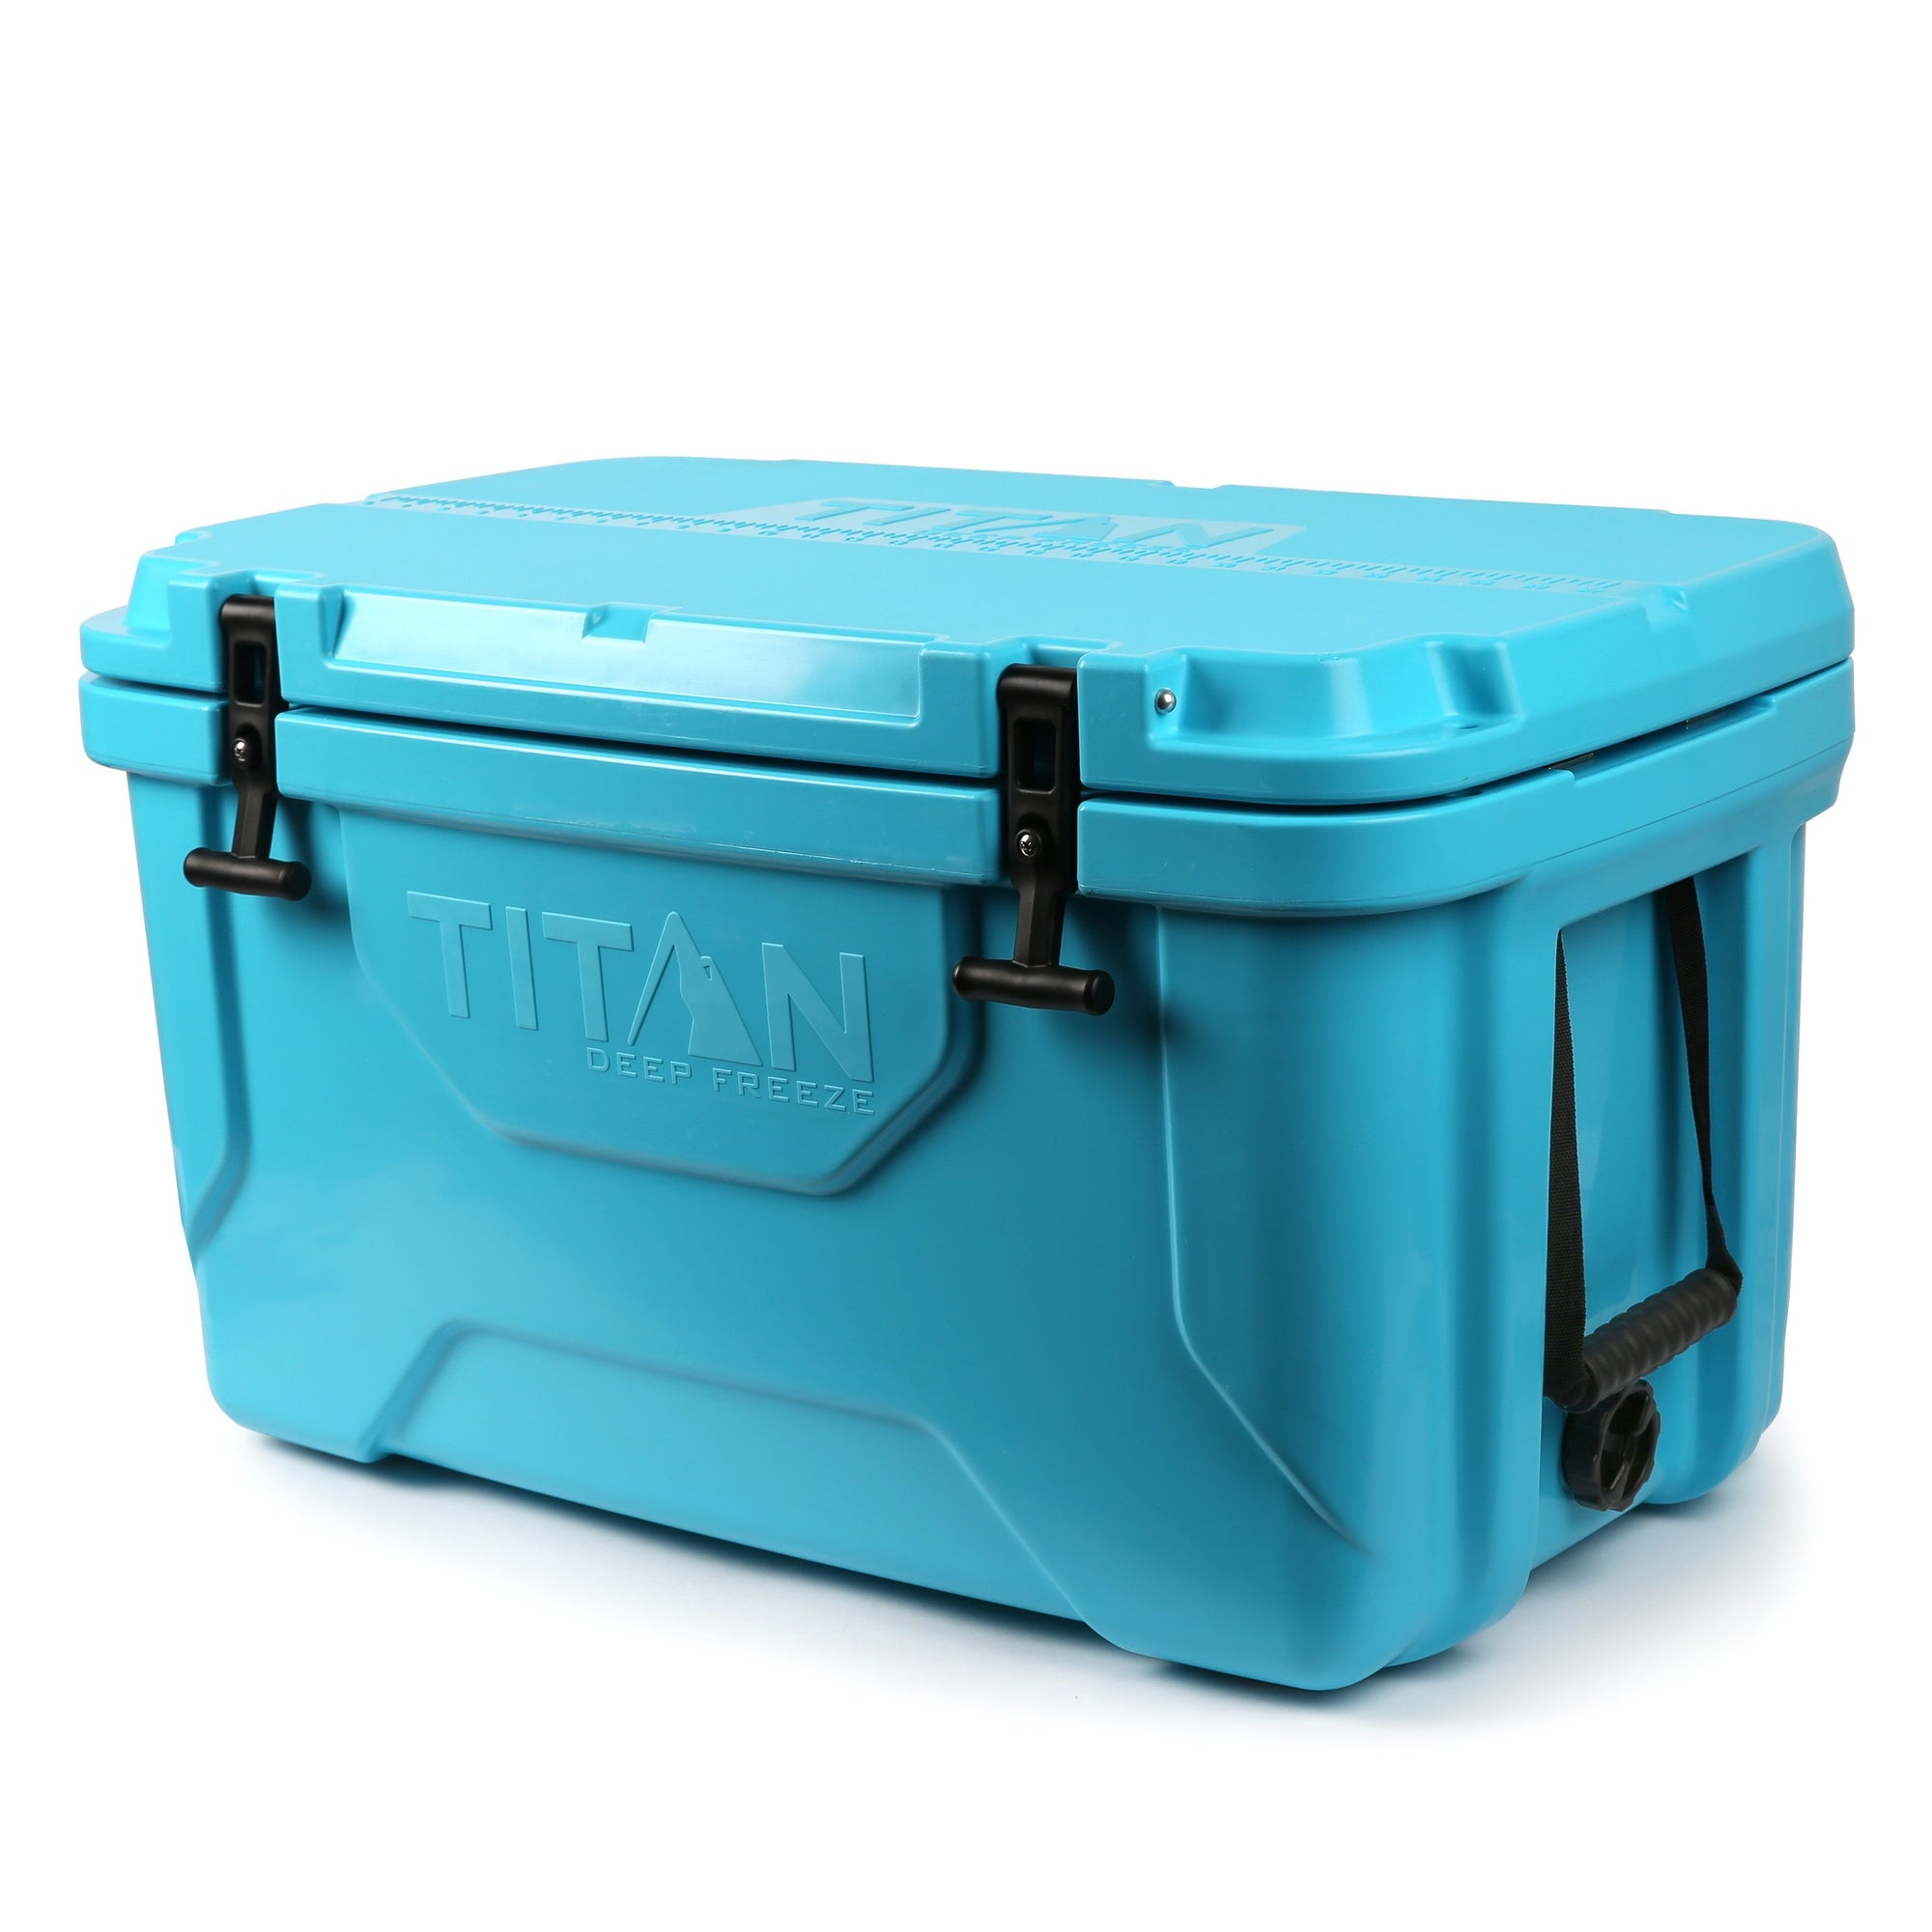 Titan Deep Freeze® 55Q Premium Ice Chest - Blue - Front, closed